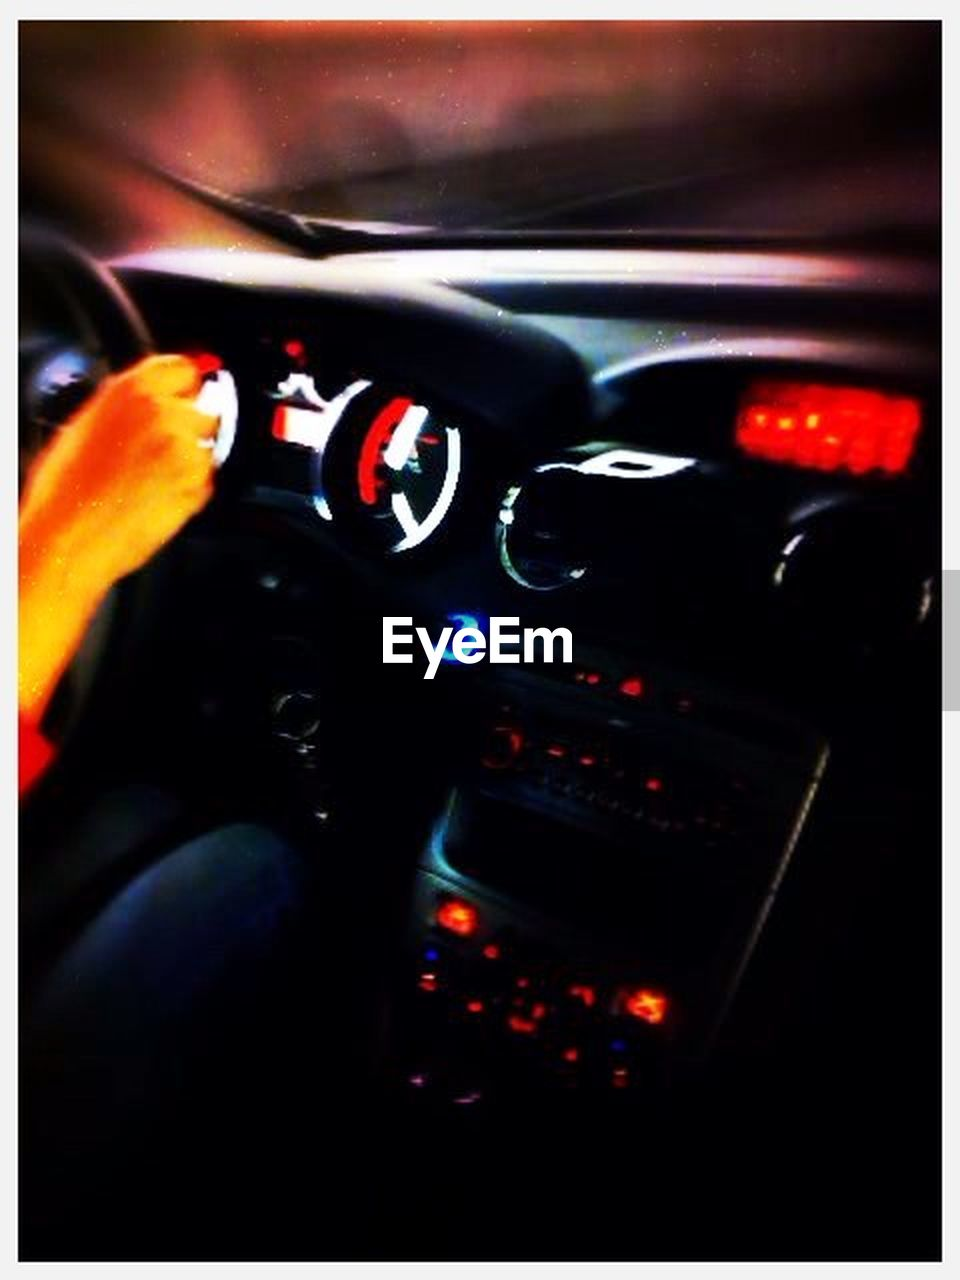 vehicle interior, transportation, car interior, control, dashboard, steering wheel, speedometer, one person, car, mode of transport, control panel, speed, human body part, human hand, close-up, night, cockpit, technology, one man only, illuminated, gauge, people, piloting, adult, outdoors, only men